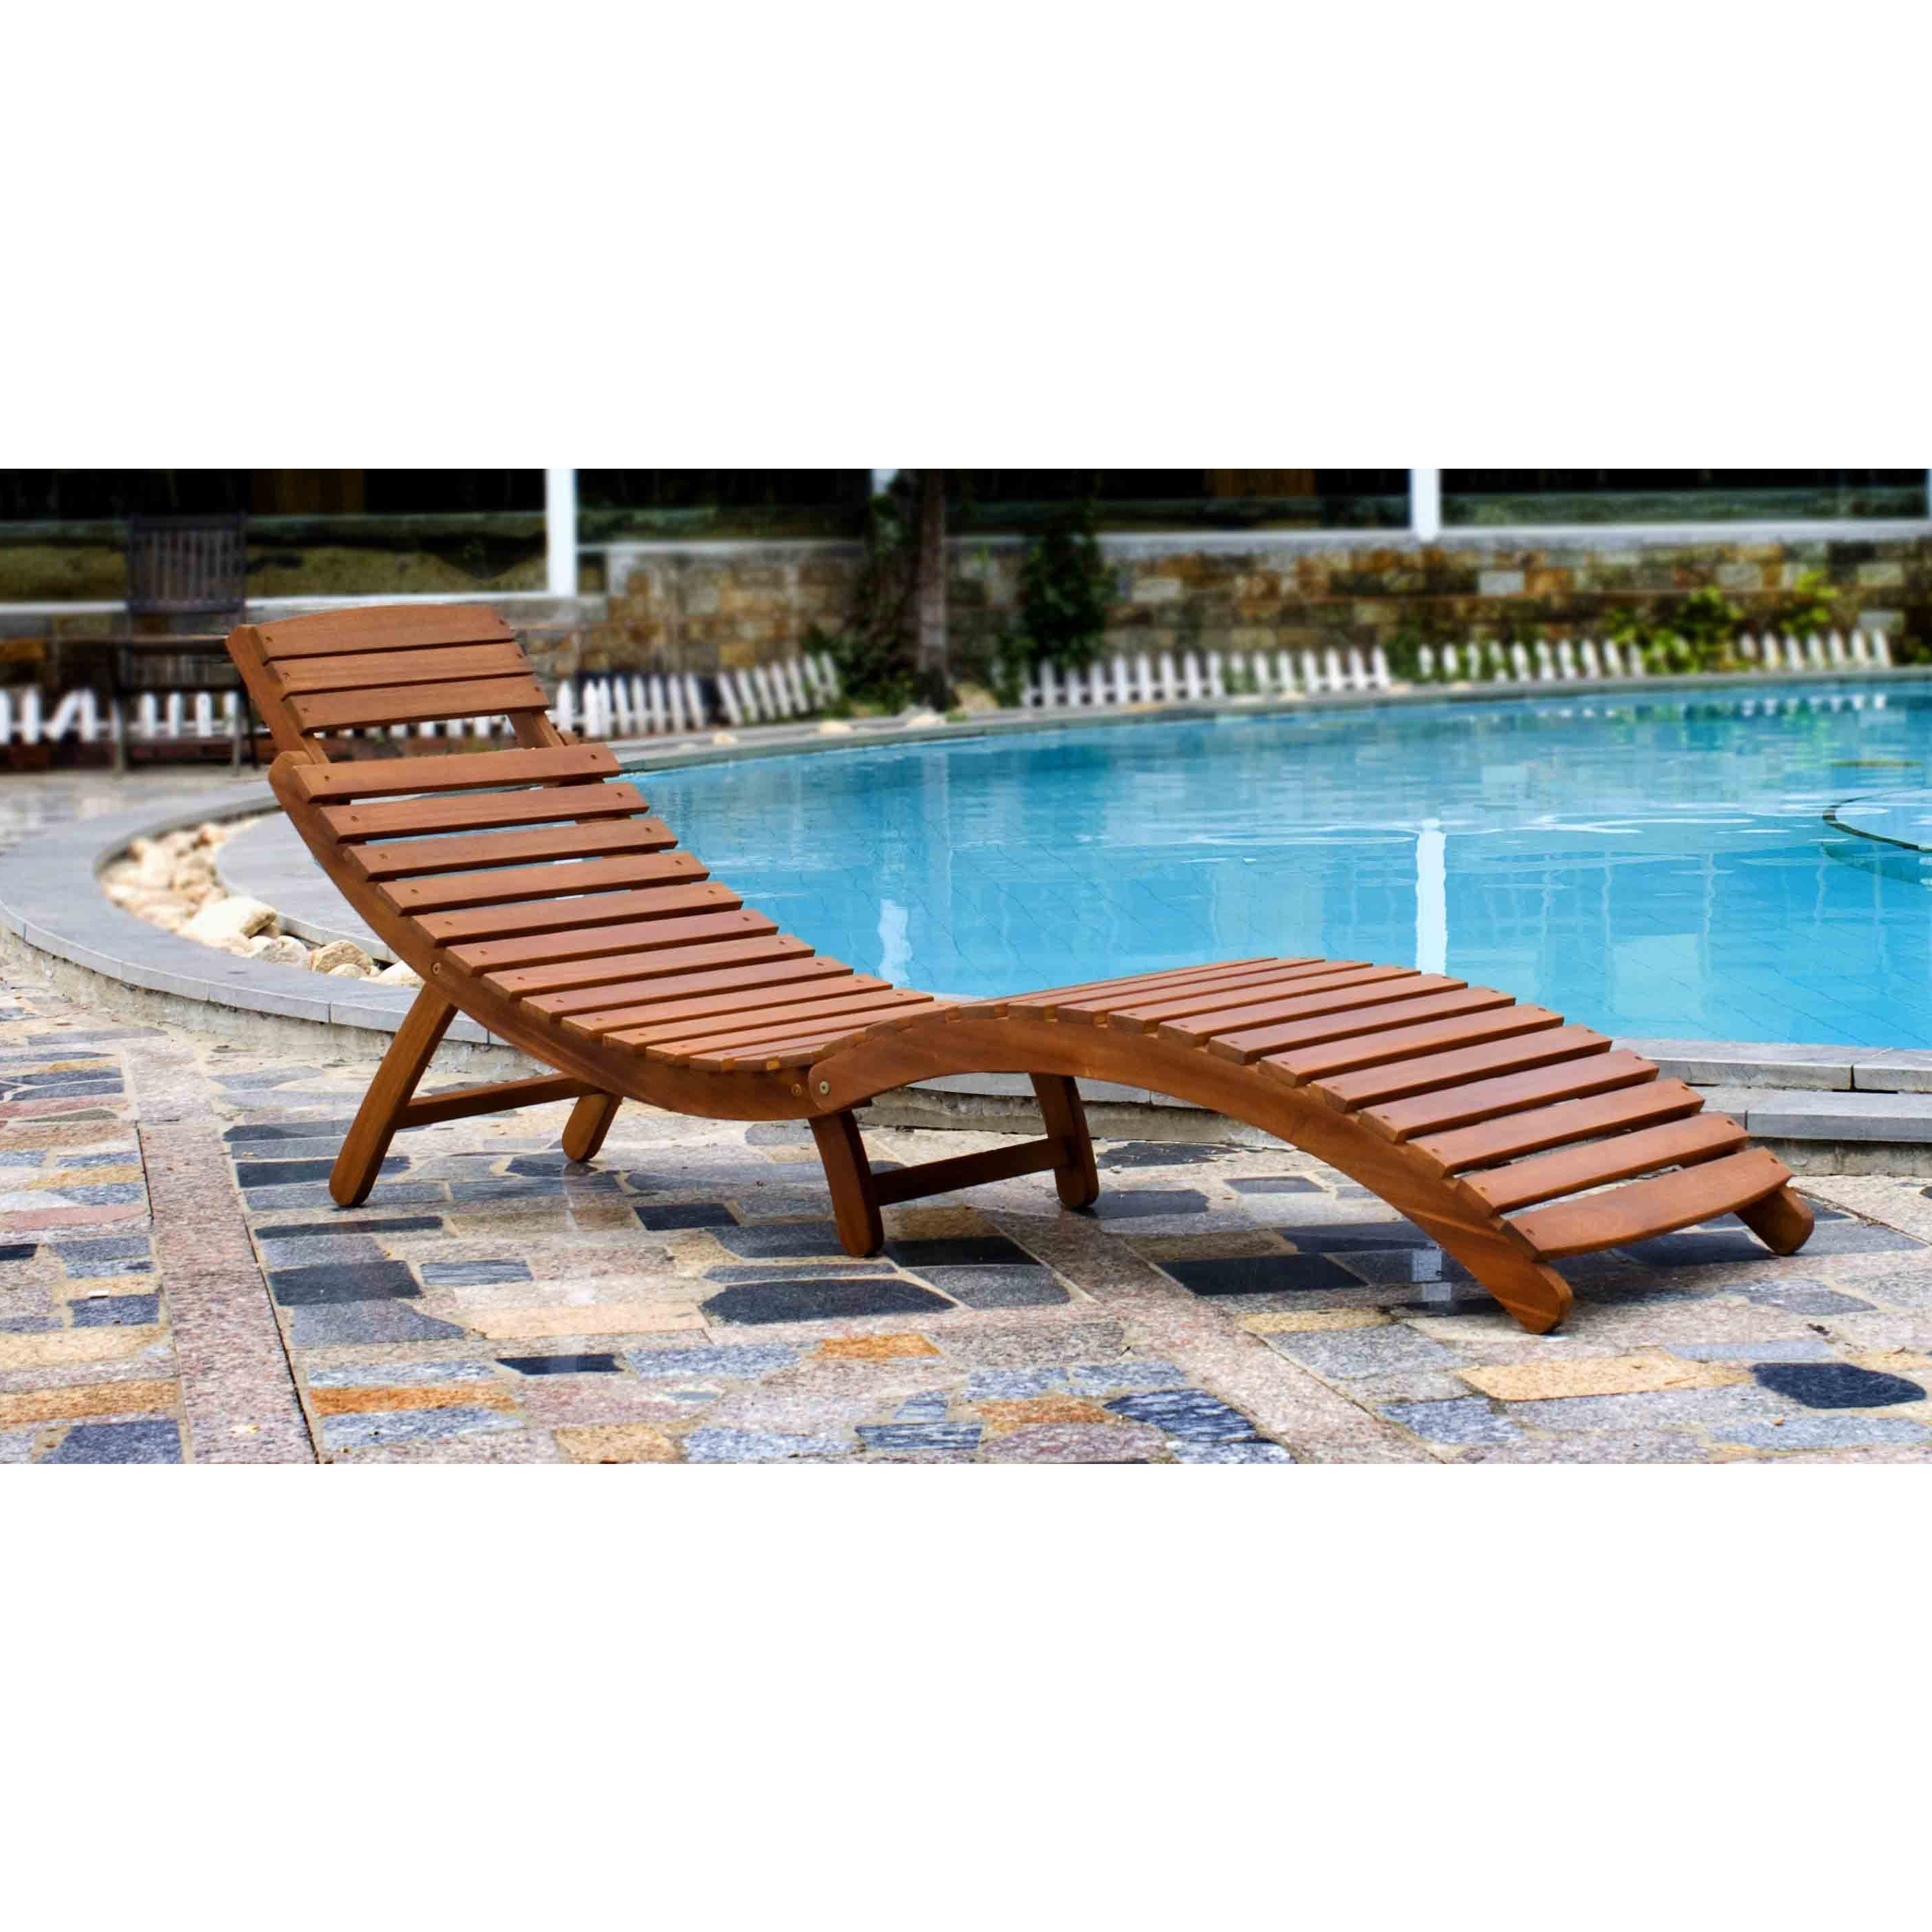 Preferred Curved Folding Chaise Loungers Regarding Shop Merry Products Curved Folding Chaise Lounger – Free (View 1 of 25)